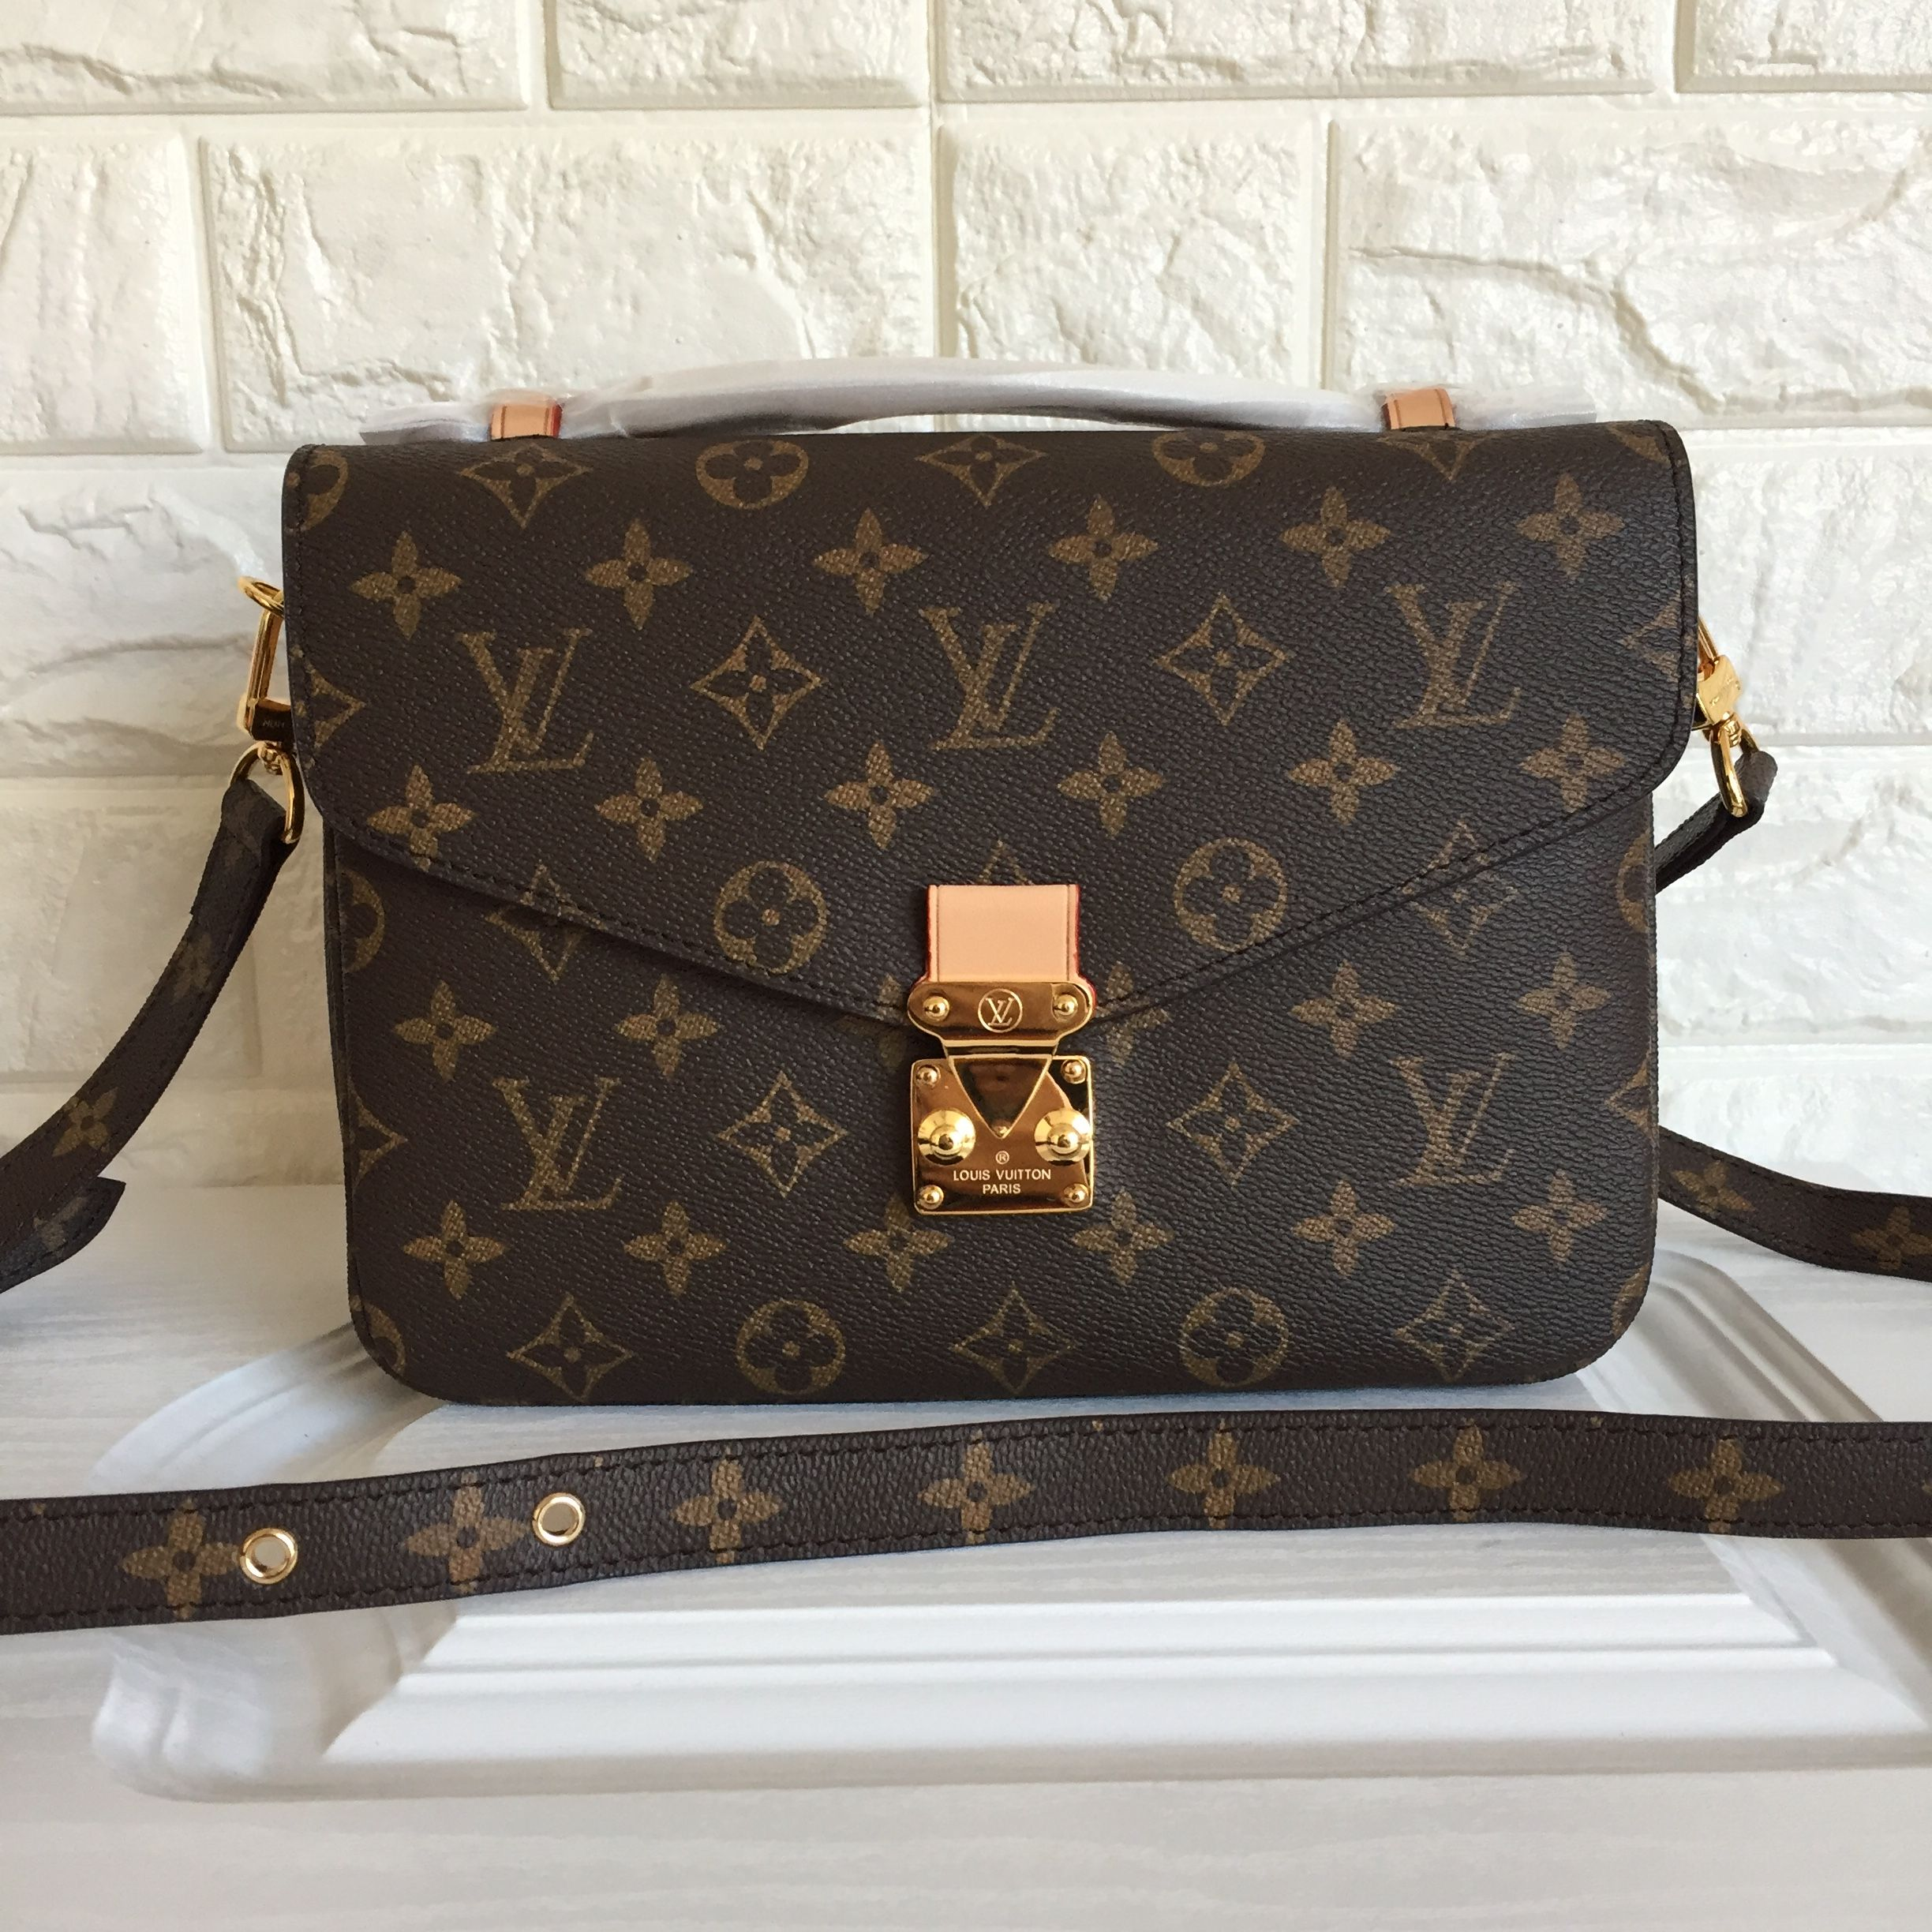 55a8eead0 Louis Vuitton Zephyr 70 Rolling Luggage Tan | Bag Envy | Louis vuitton,  Bags, Handbags